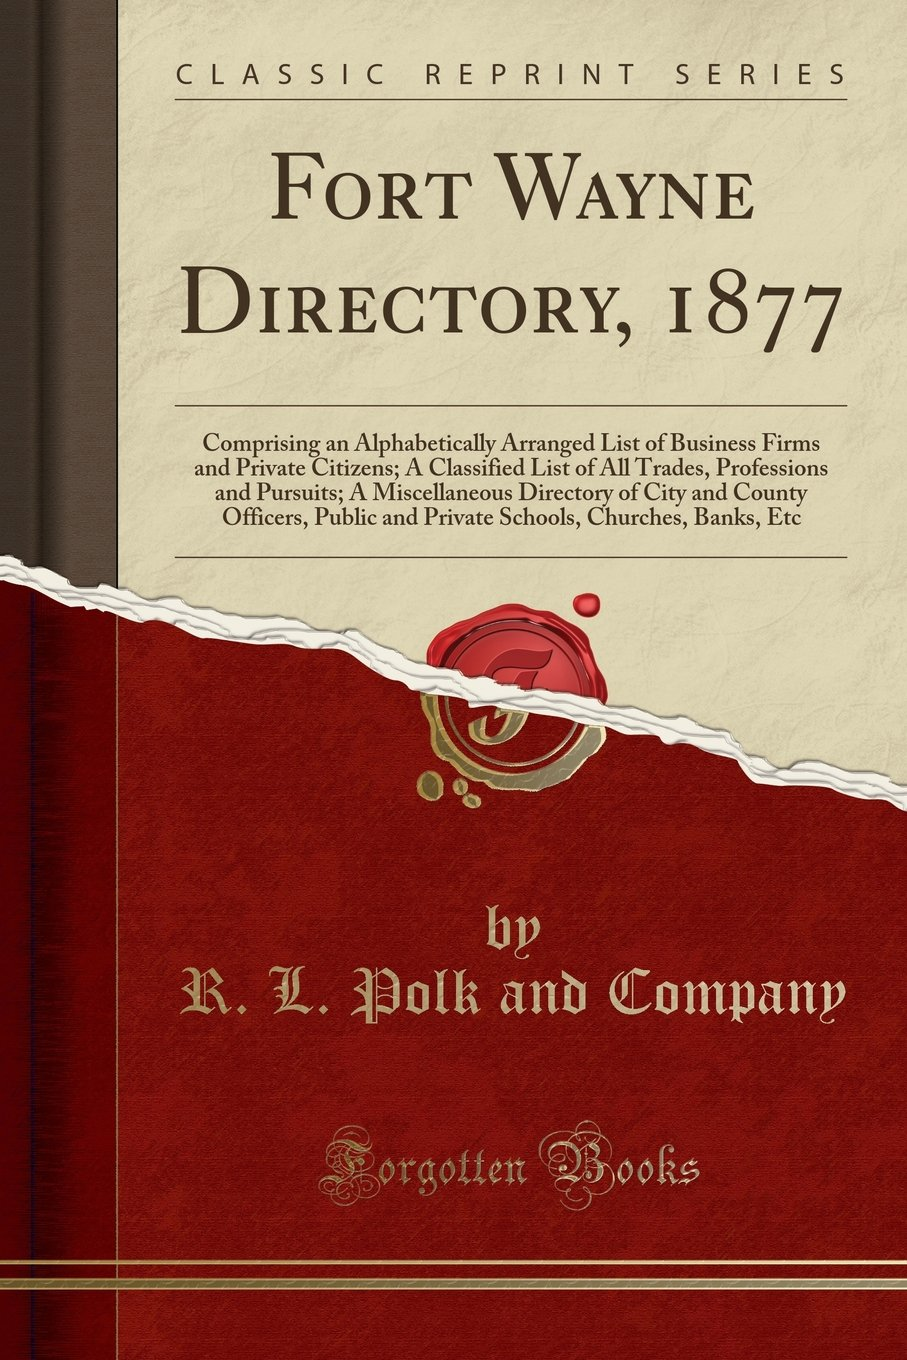 Download Fort Wayne Directory, 1877: Comprising an Alphabetically Arranged List of Business Firms and Private Citizens; A Classified List of All Trades, ... Officers, Public and Private Schools, Ch pdf epub